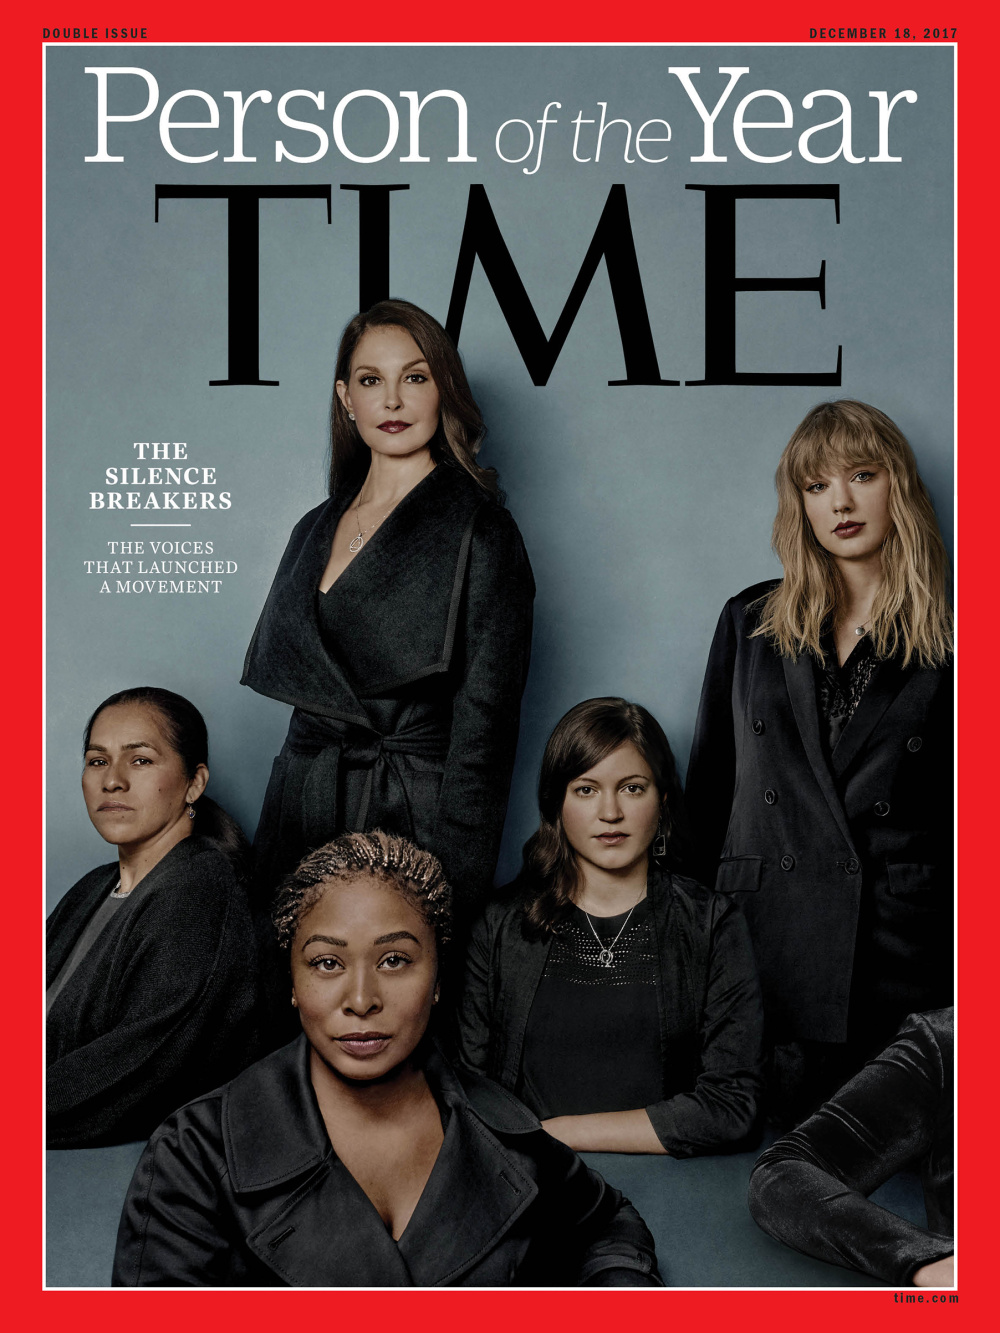 Image from: http://time.com/time-person-of-the-year-2017-silence-breakers/